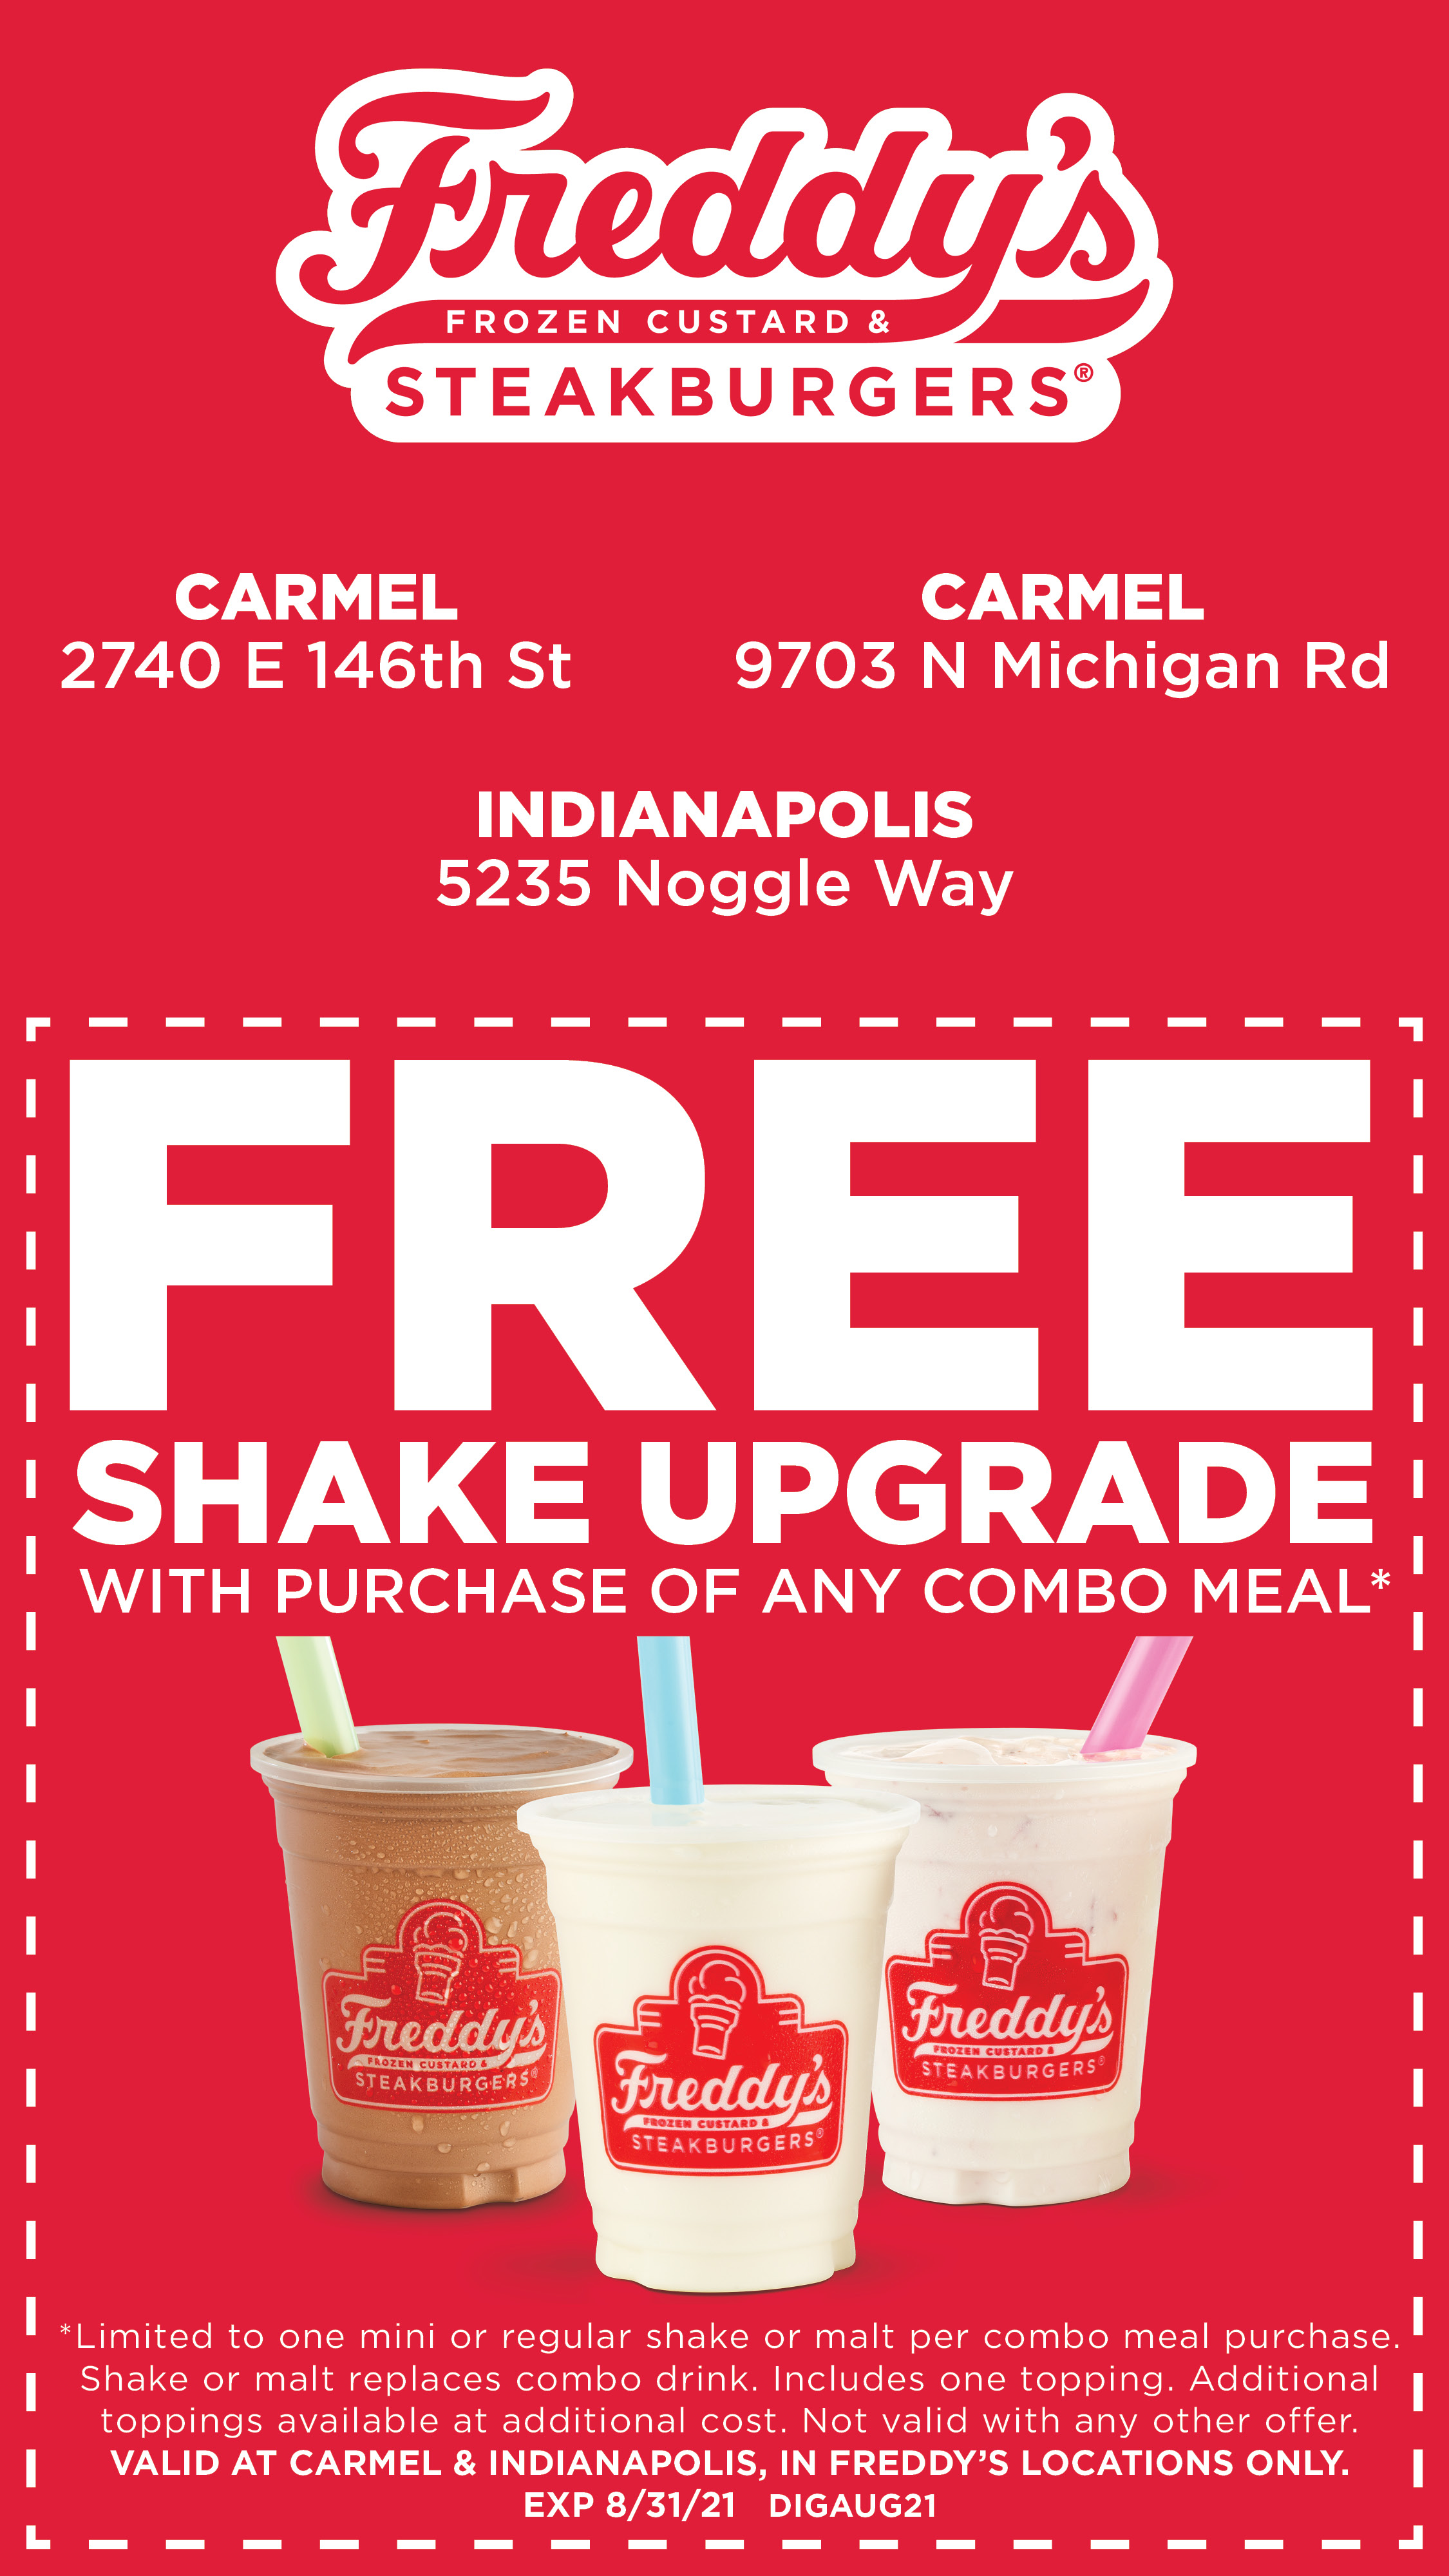 Free shake upgrade coupon with purchase of any combo meal - valide at carmel & indianapolis freddys locations - expires 8/31/21